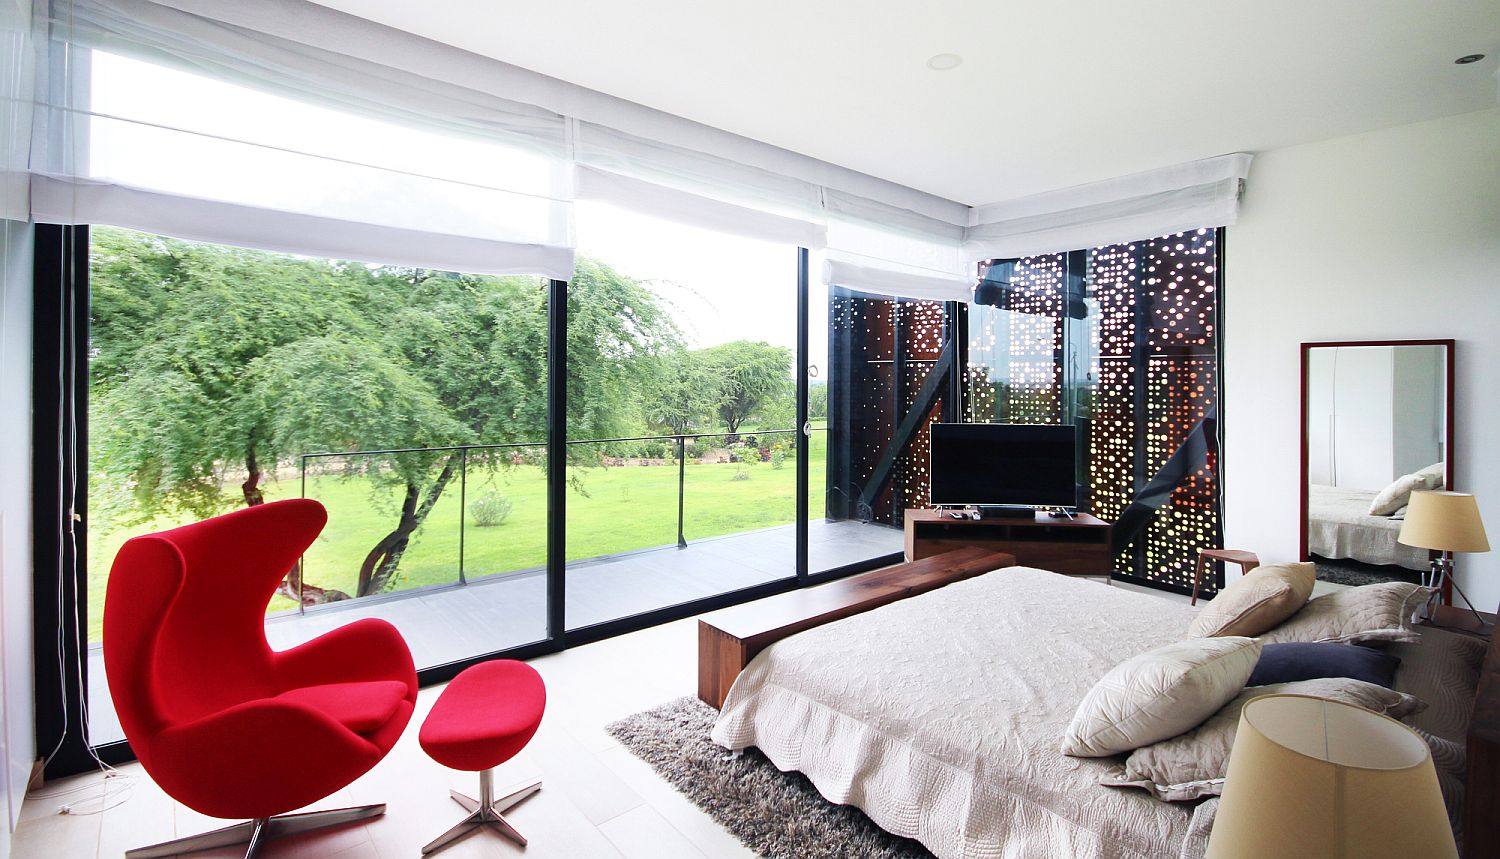 Pops of red enliven the contemporary interior